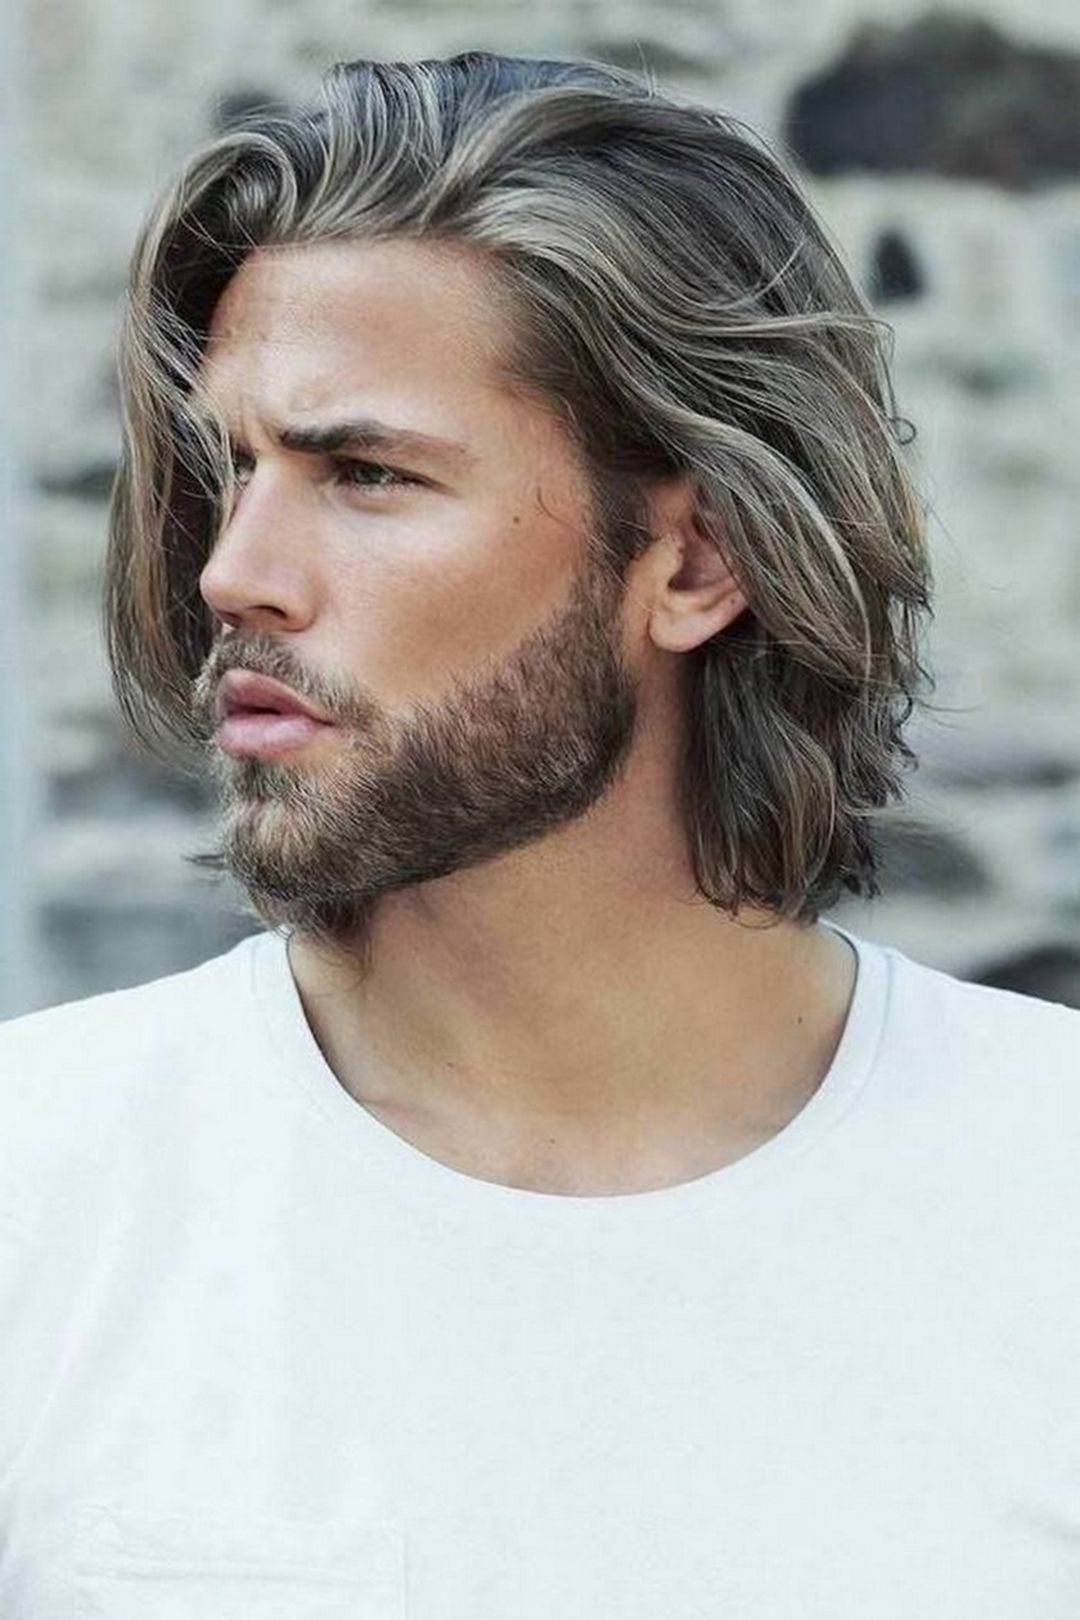 10 Coolest Men S Long Hairstyles Models Throughout 2019 Fashions Nowadays Medium Length Hair Styles Men S Long Hairstyles Medium Hair Styles